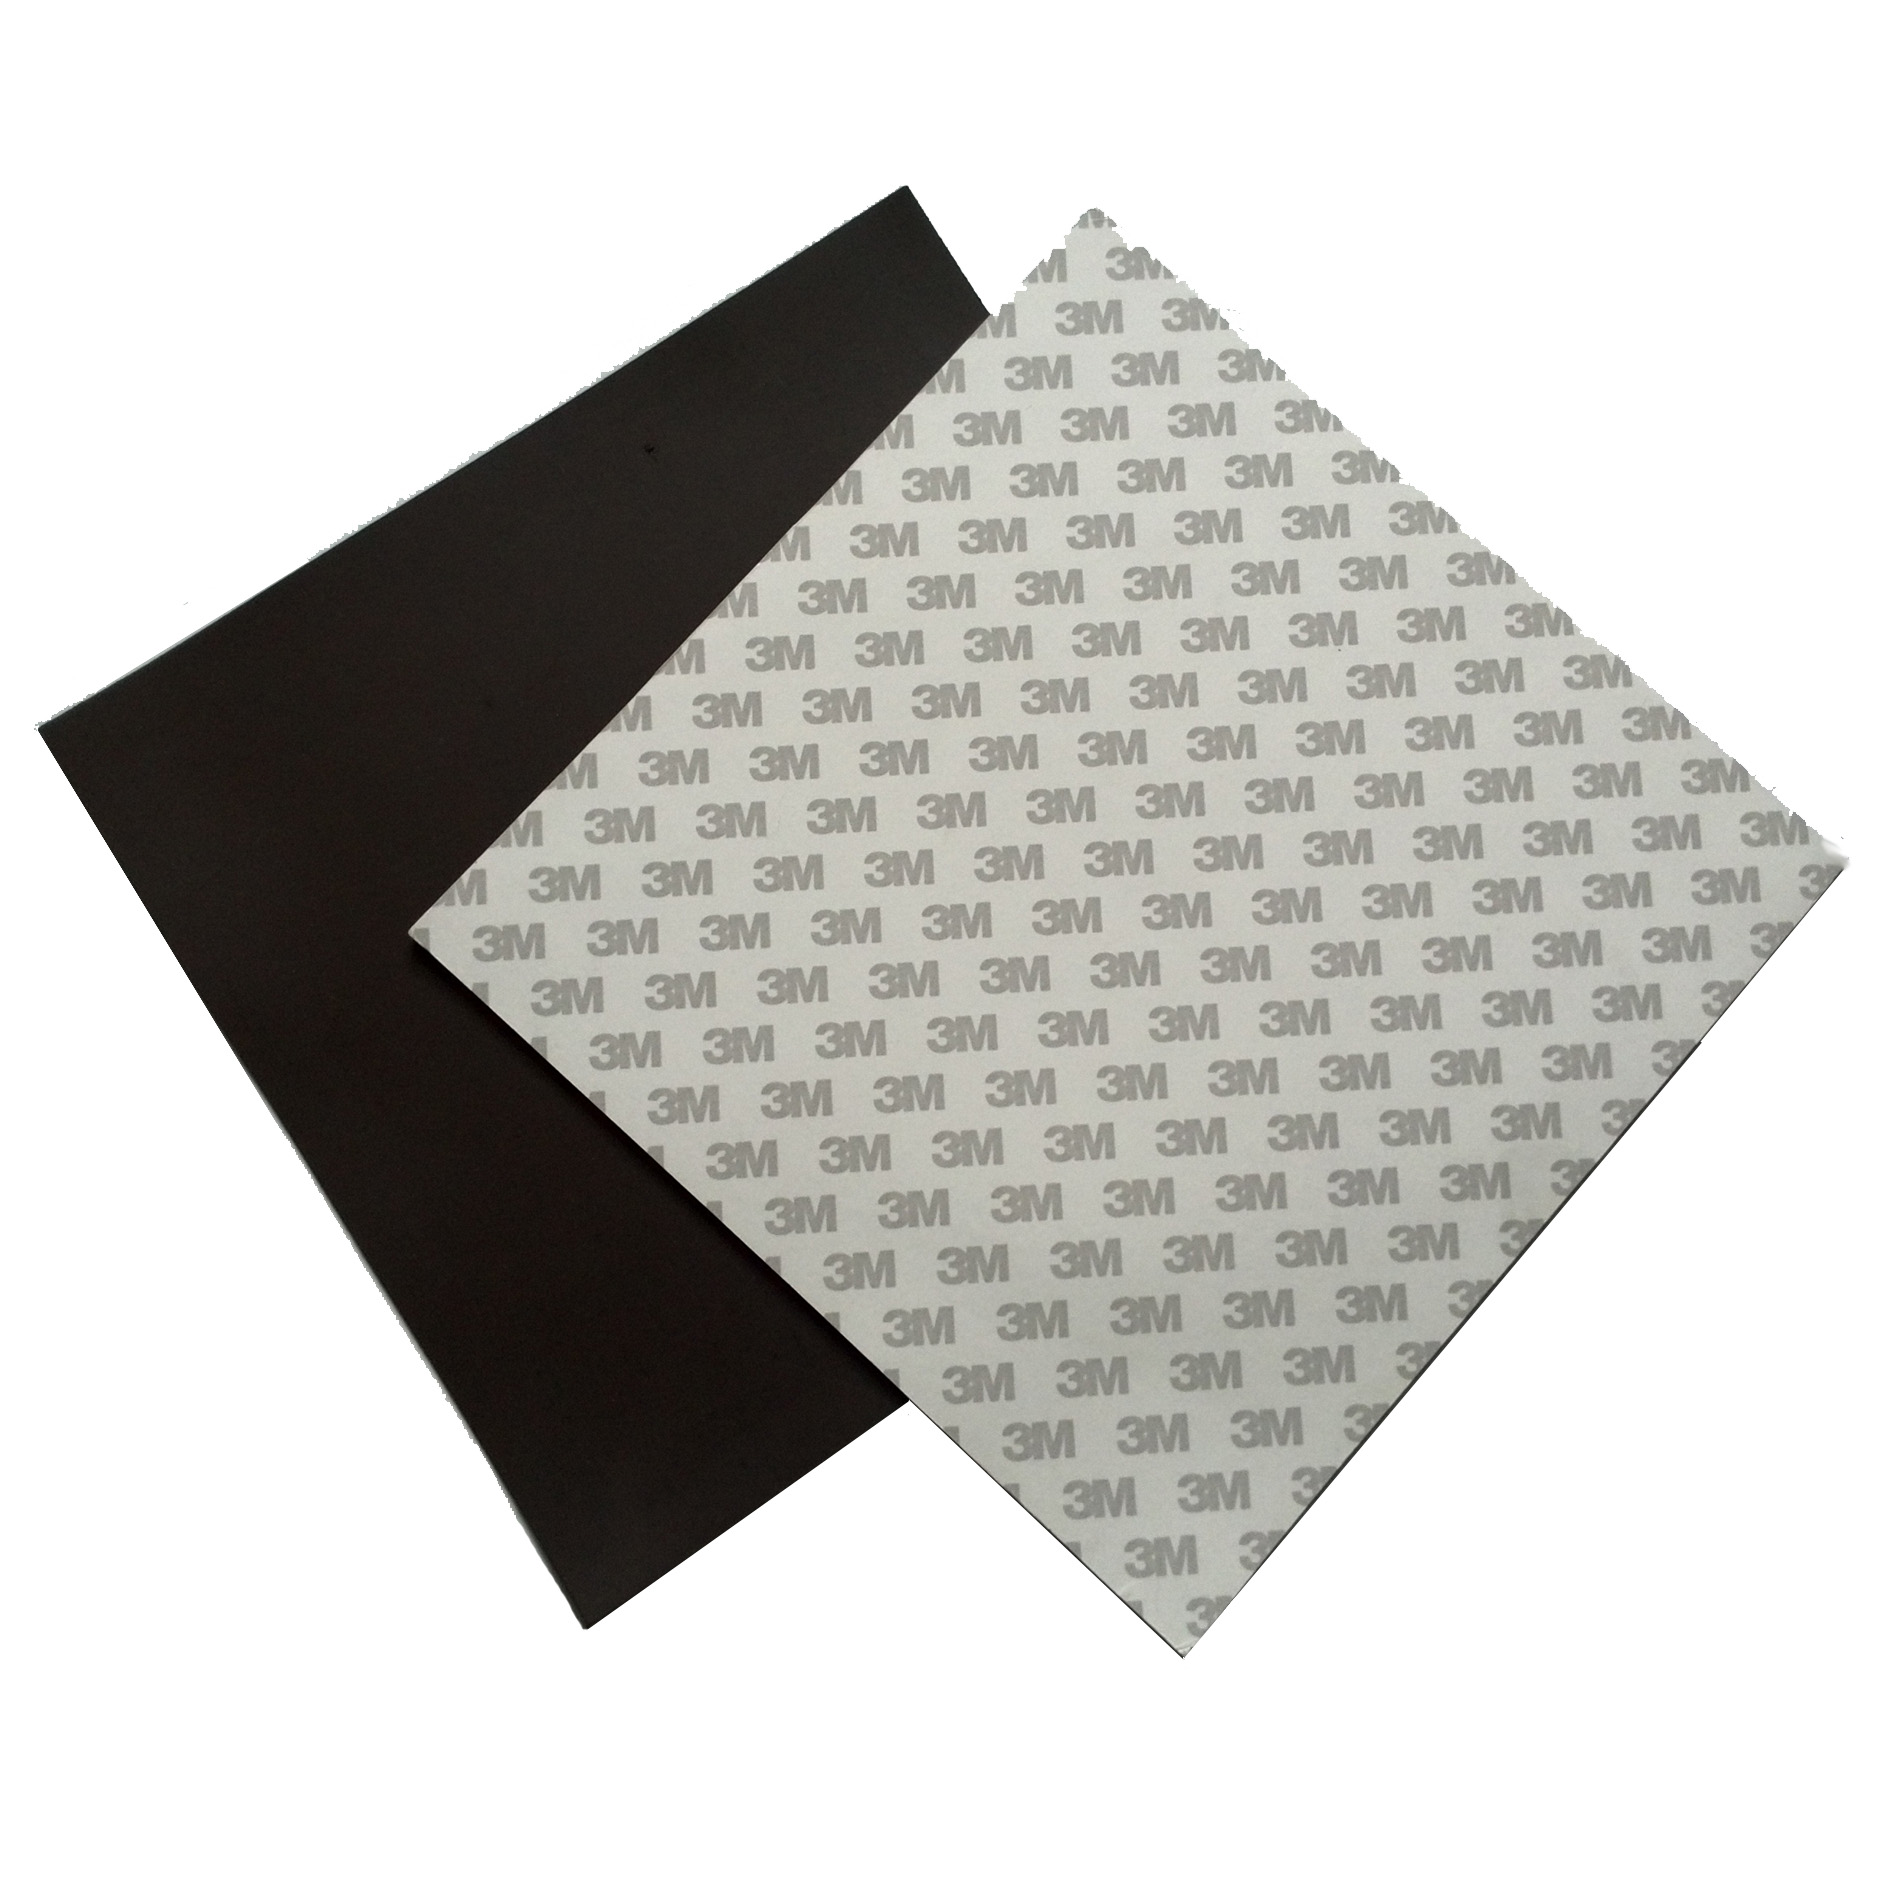 RFID electronic magnetic fabric 200*200*1mm single band 3M NFC anti interference ferrite magnetic material